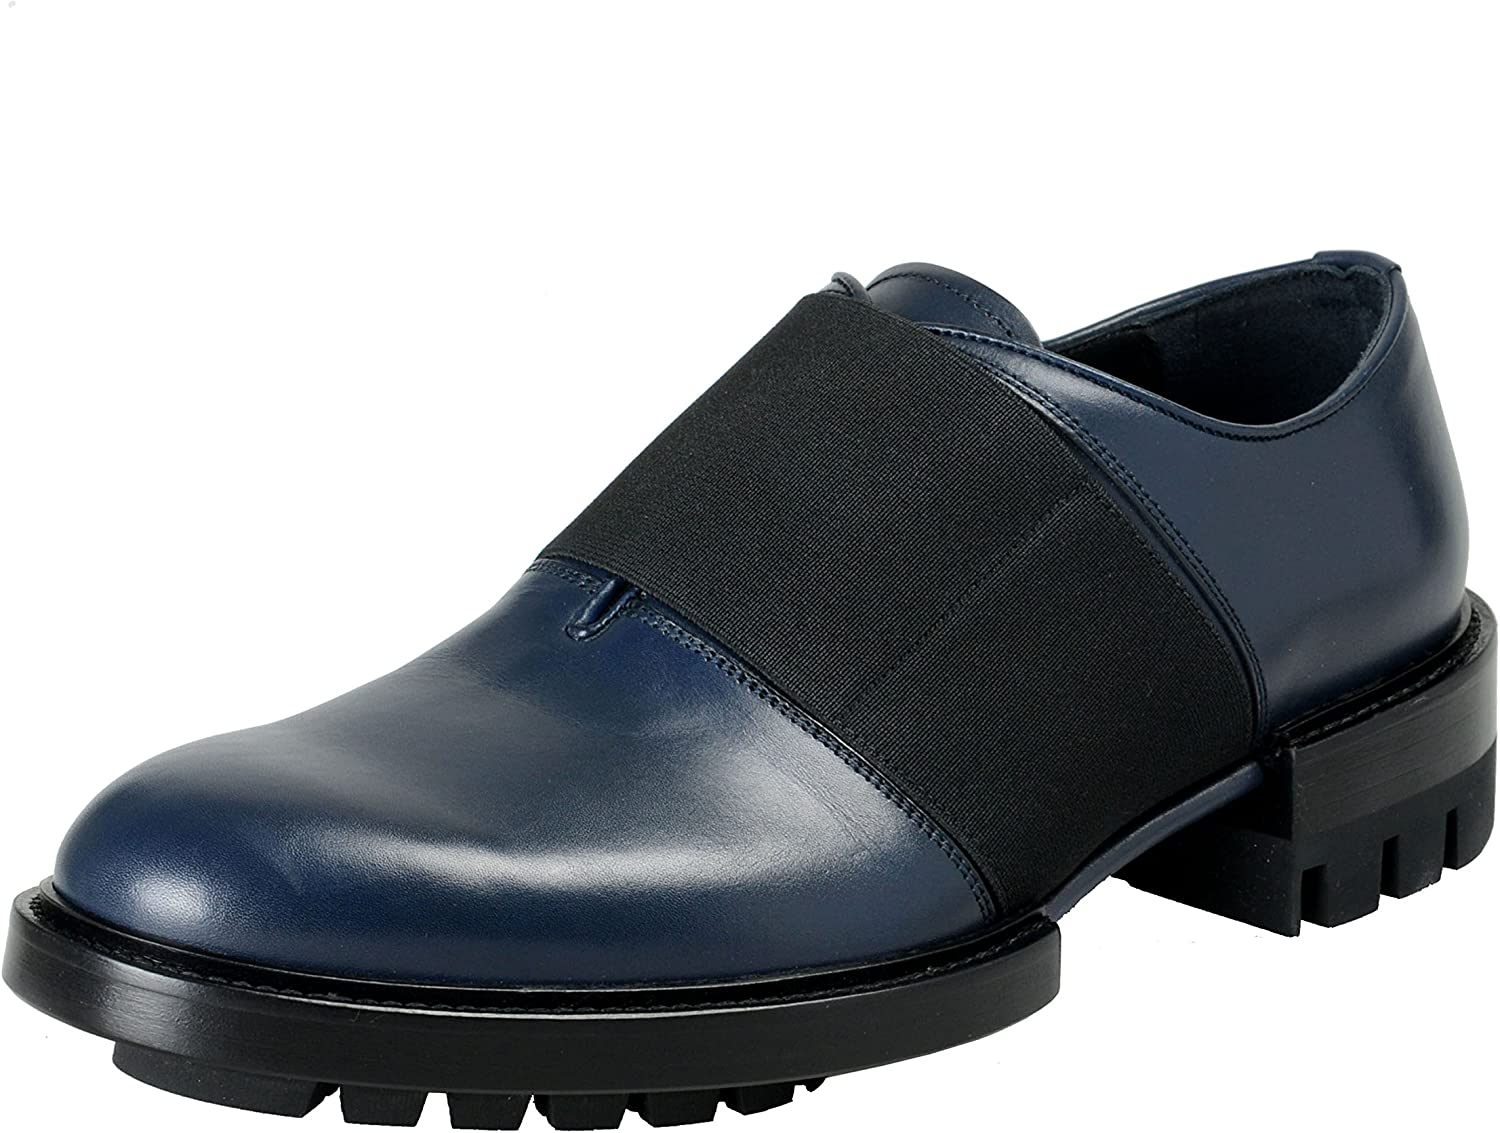 Navy Blue Leather Loafers Slip